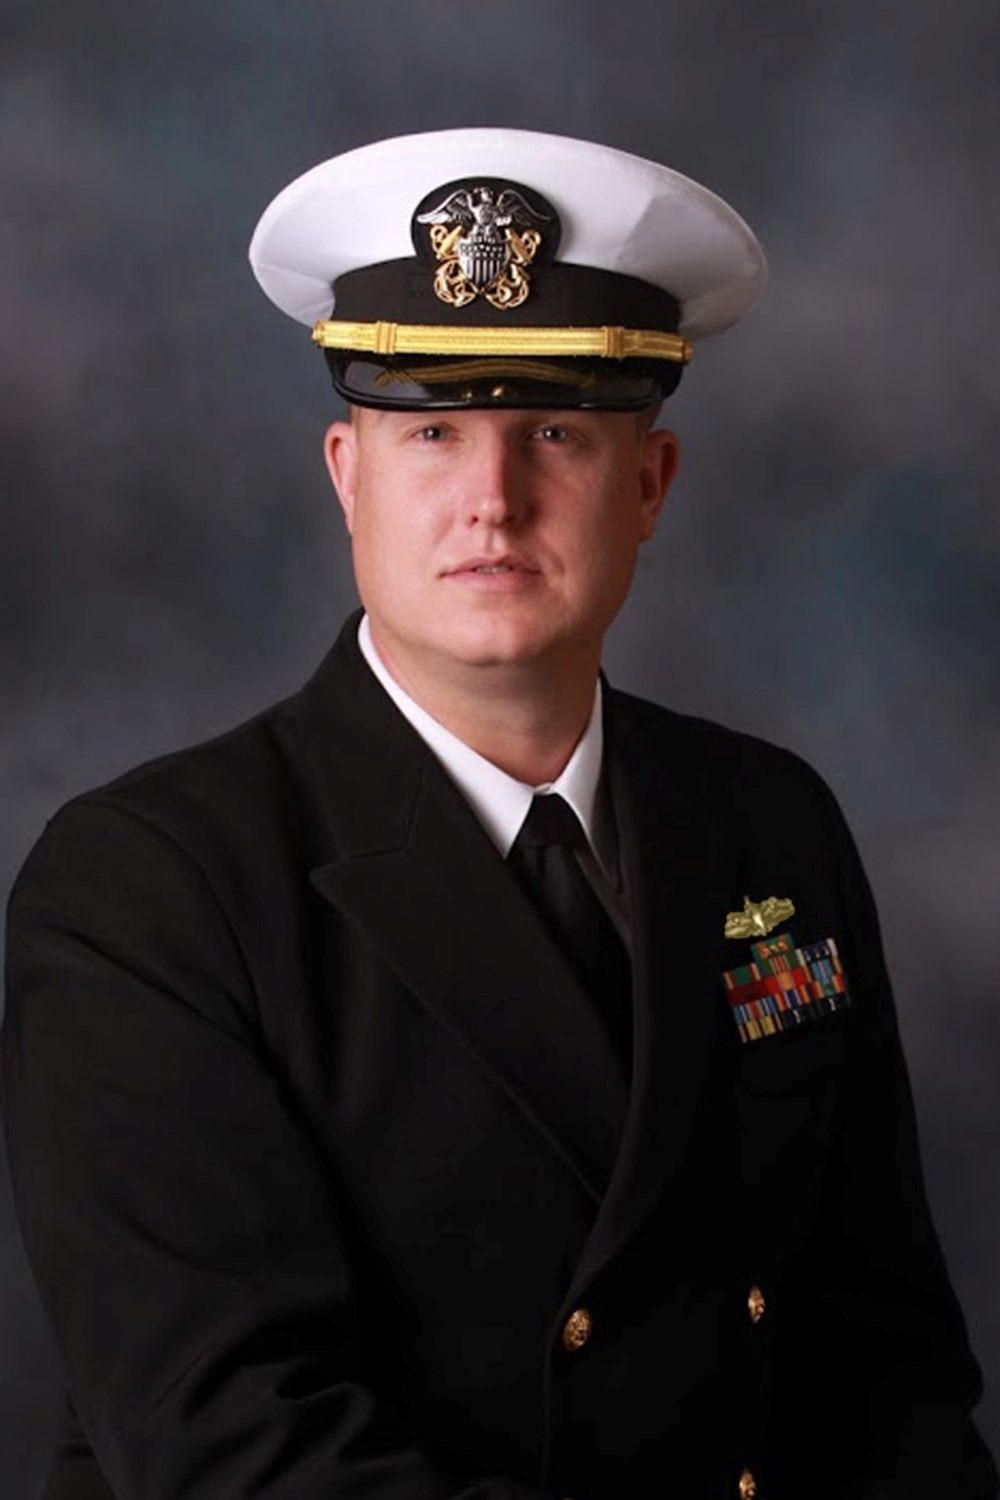 Lt. Steven Hawkins Named National Defense Industrial Association Tester of the Year for Executing Two Significant Navy Missions